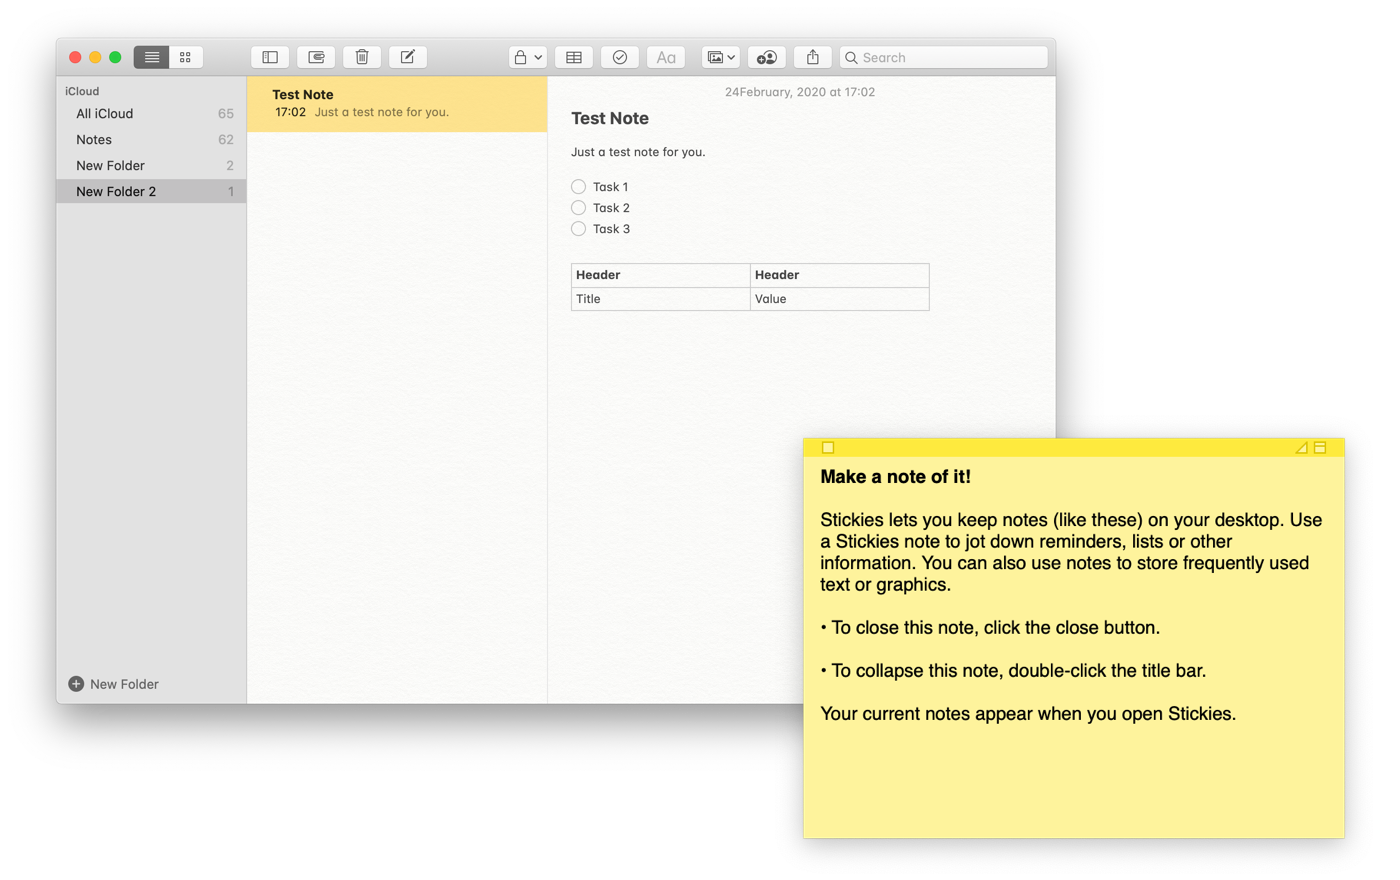 Apple Notes and Stickies